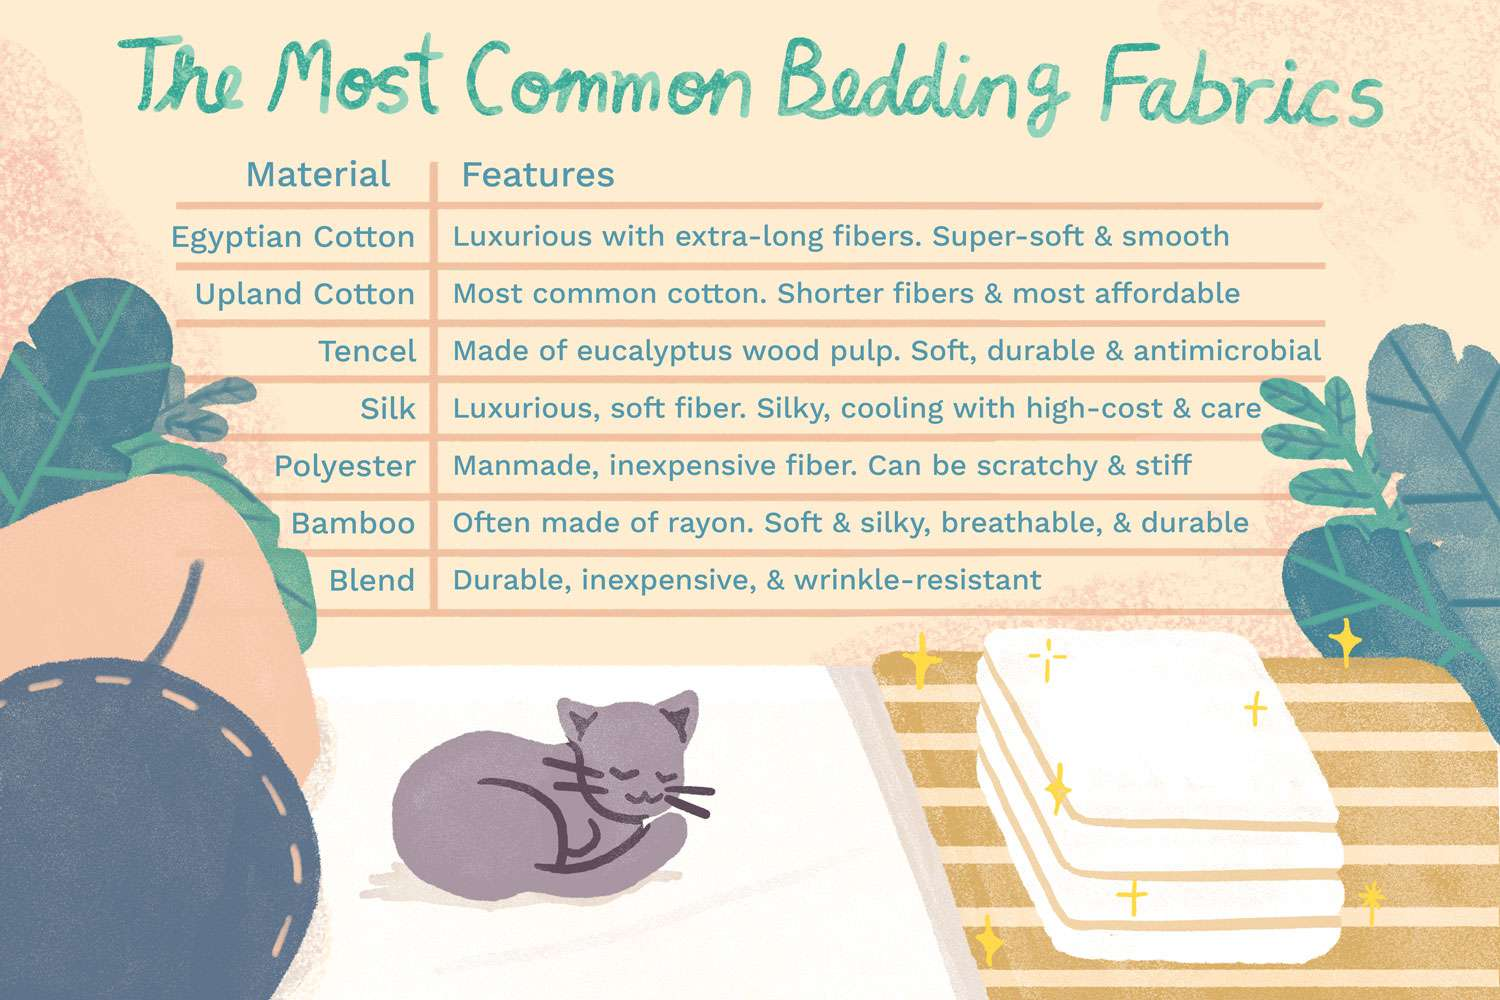 Common Fabric Materials Used in Bed Sheets and Bedding